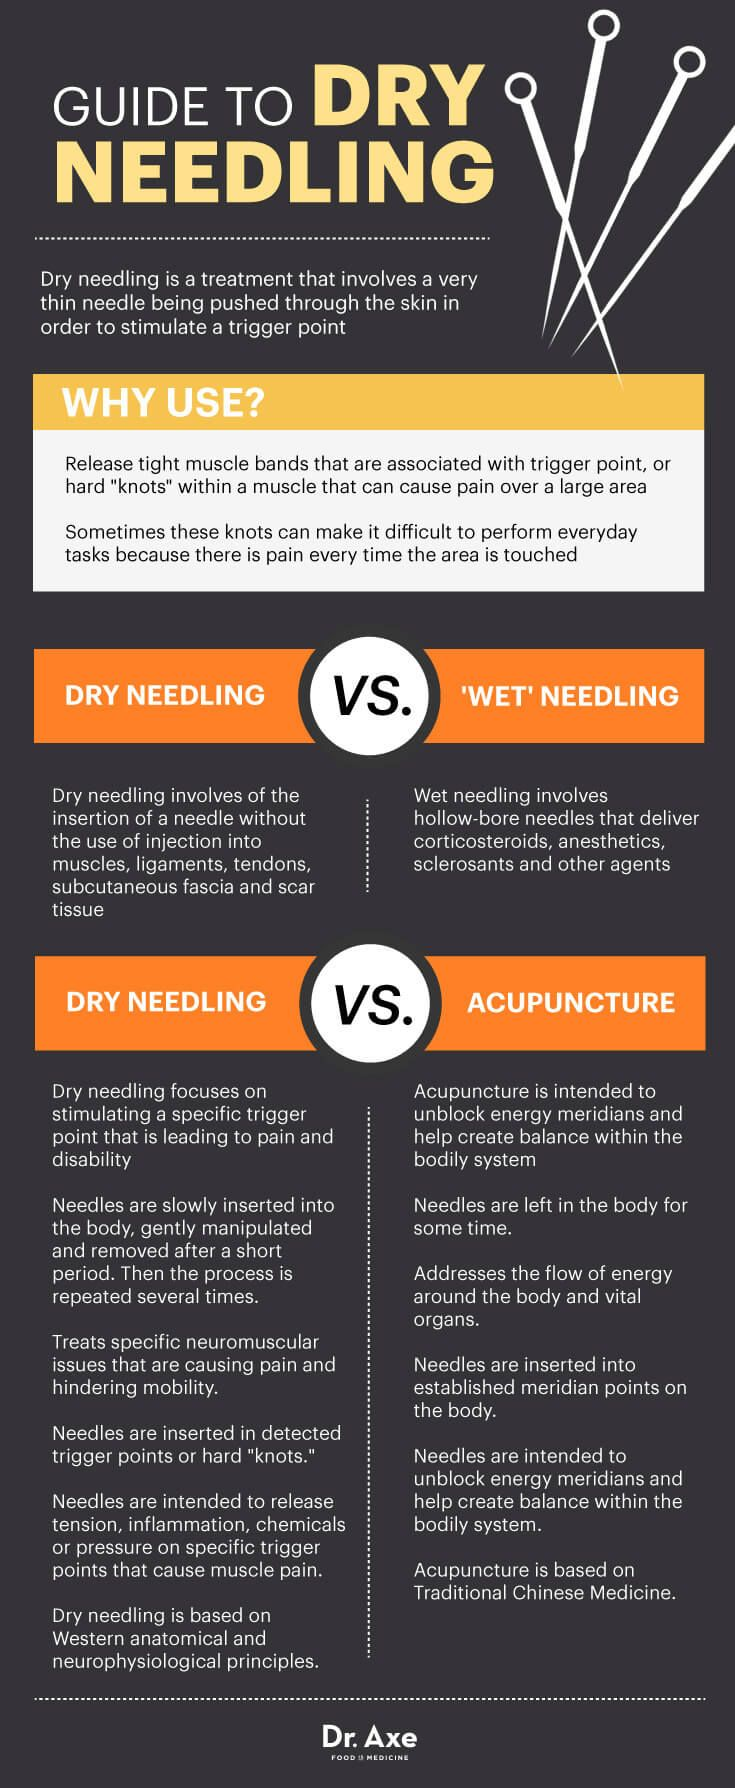 Guide to dry needling - Dr. Axe http://www.draxe.com #health #Holistic #natural